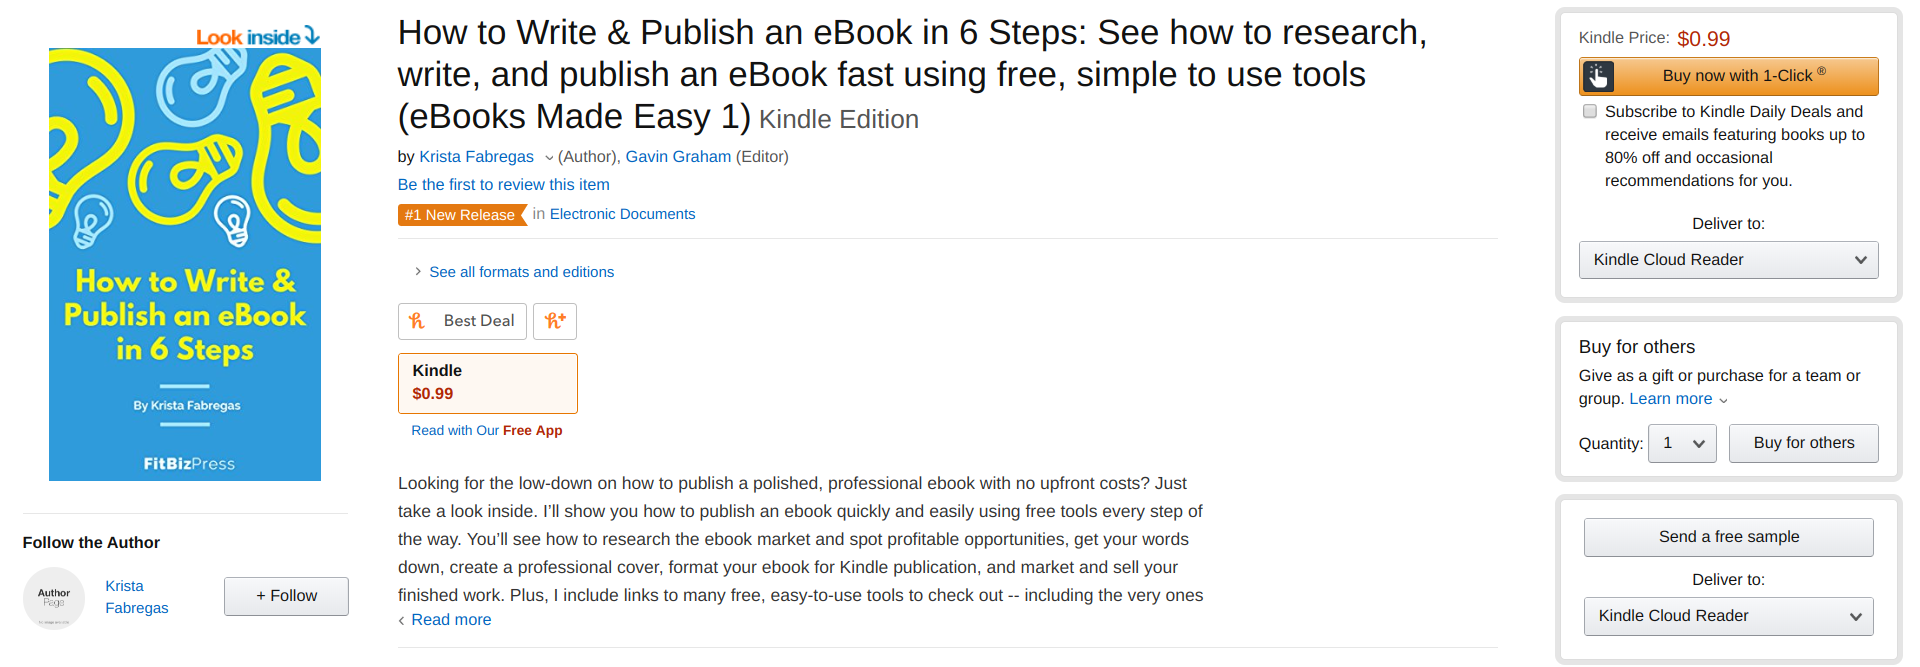 Amazon KDP - kindle direct publishing - live ebook listing